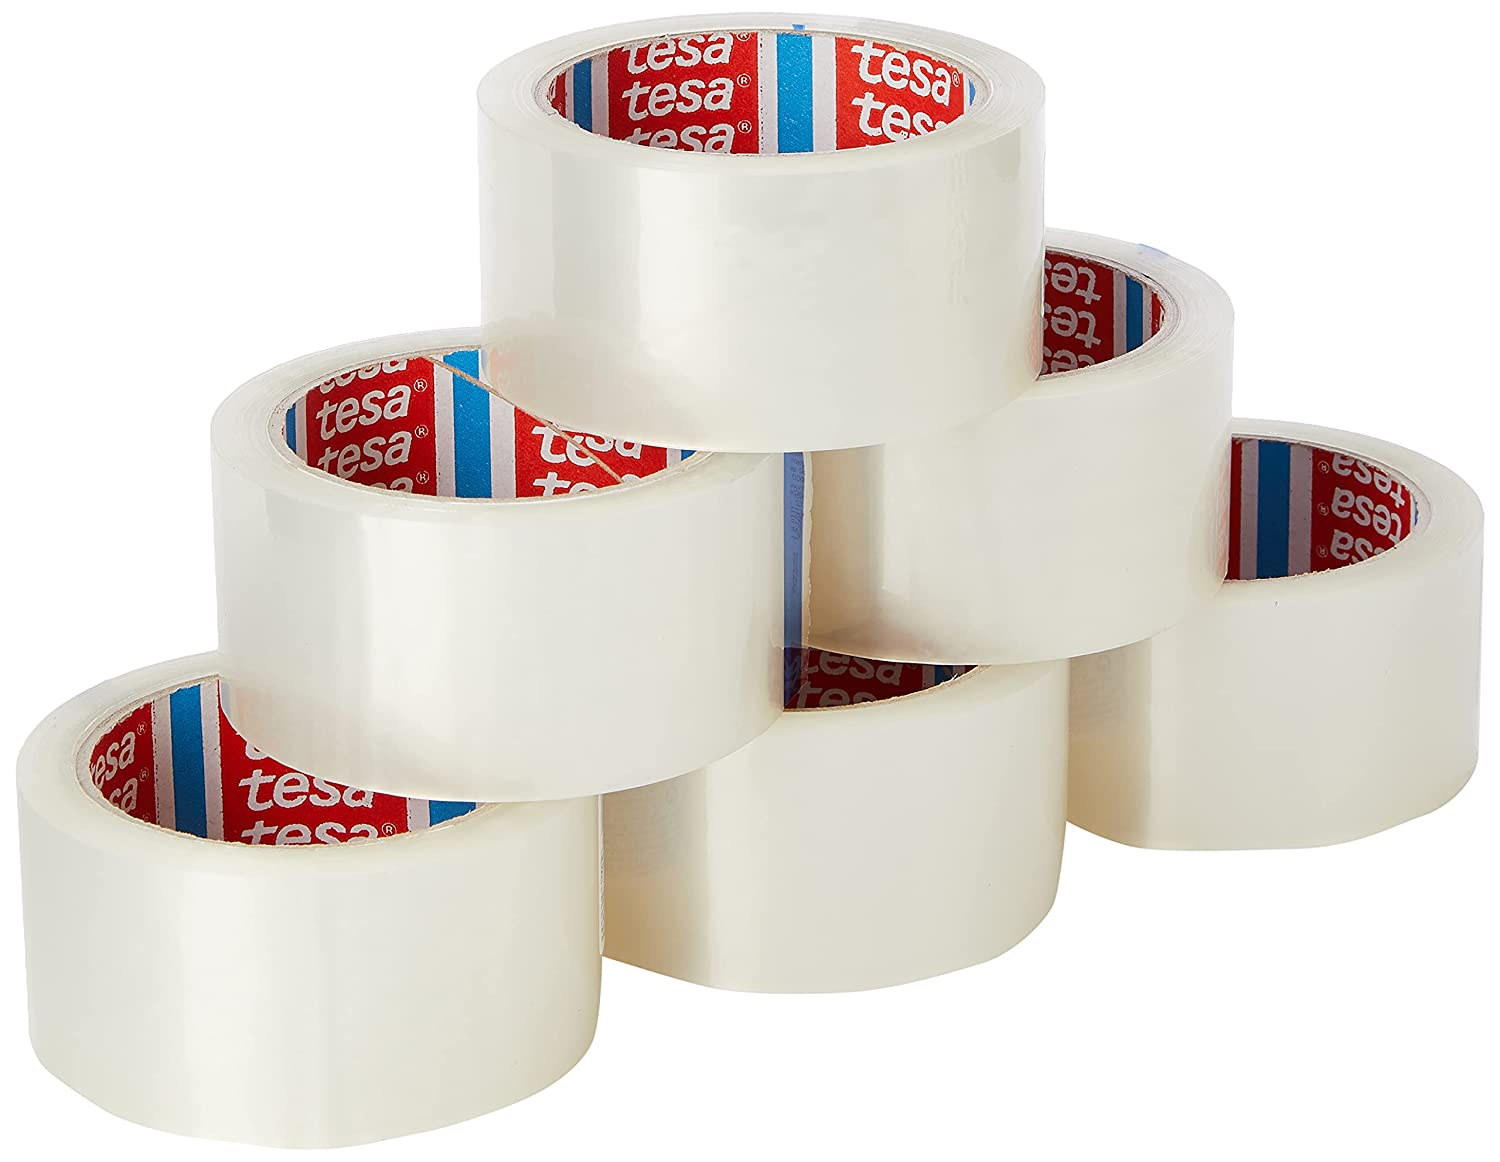 Adhesive Tape Of Polypoprylene Fashionable Transparent M Premium Ranking integrated 1st place Packing 60